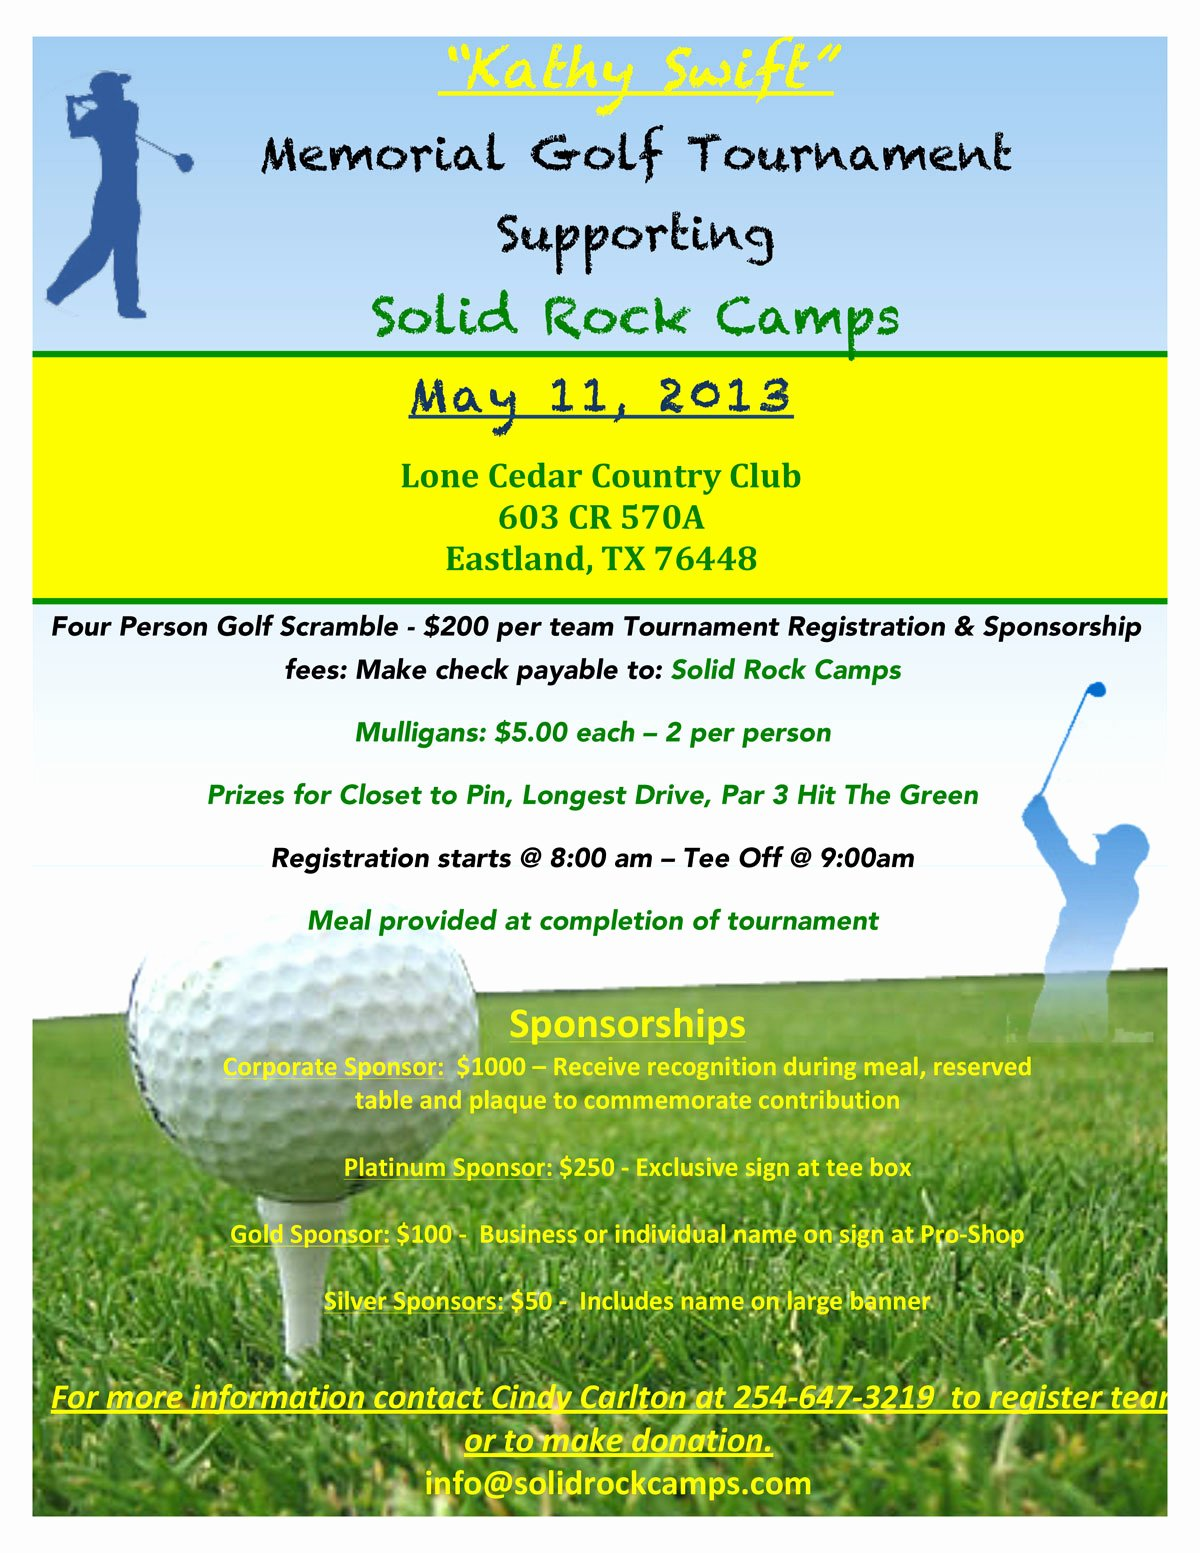 Free Golf Flyer Templates Unique Kathy Swift Memorial Golf tournament May 11 Microplexnews